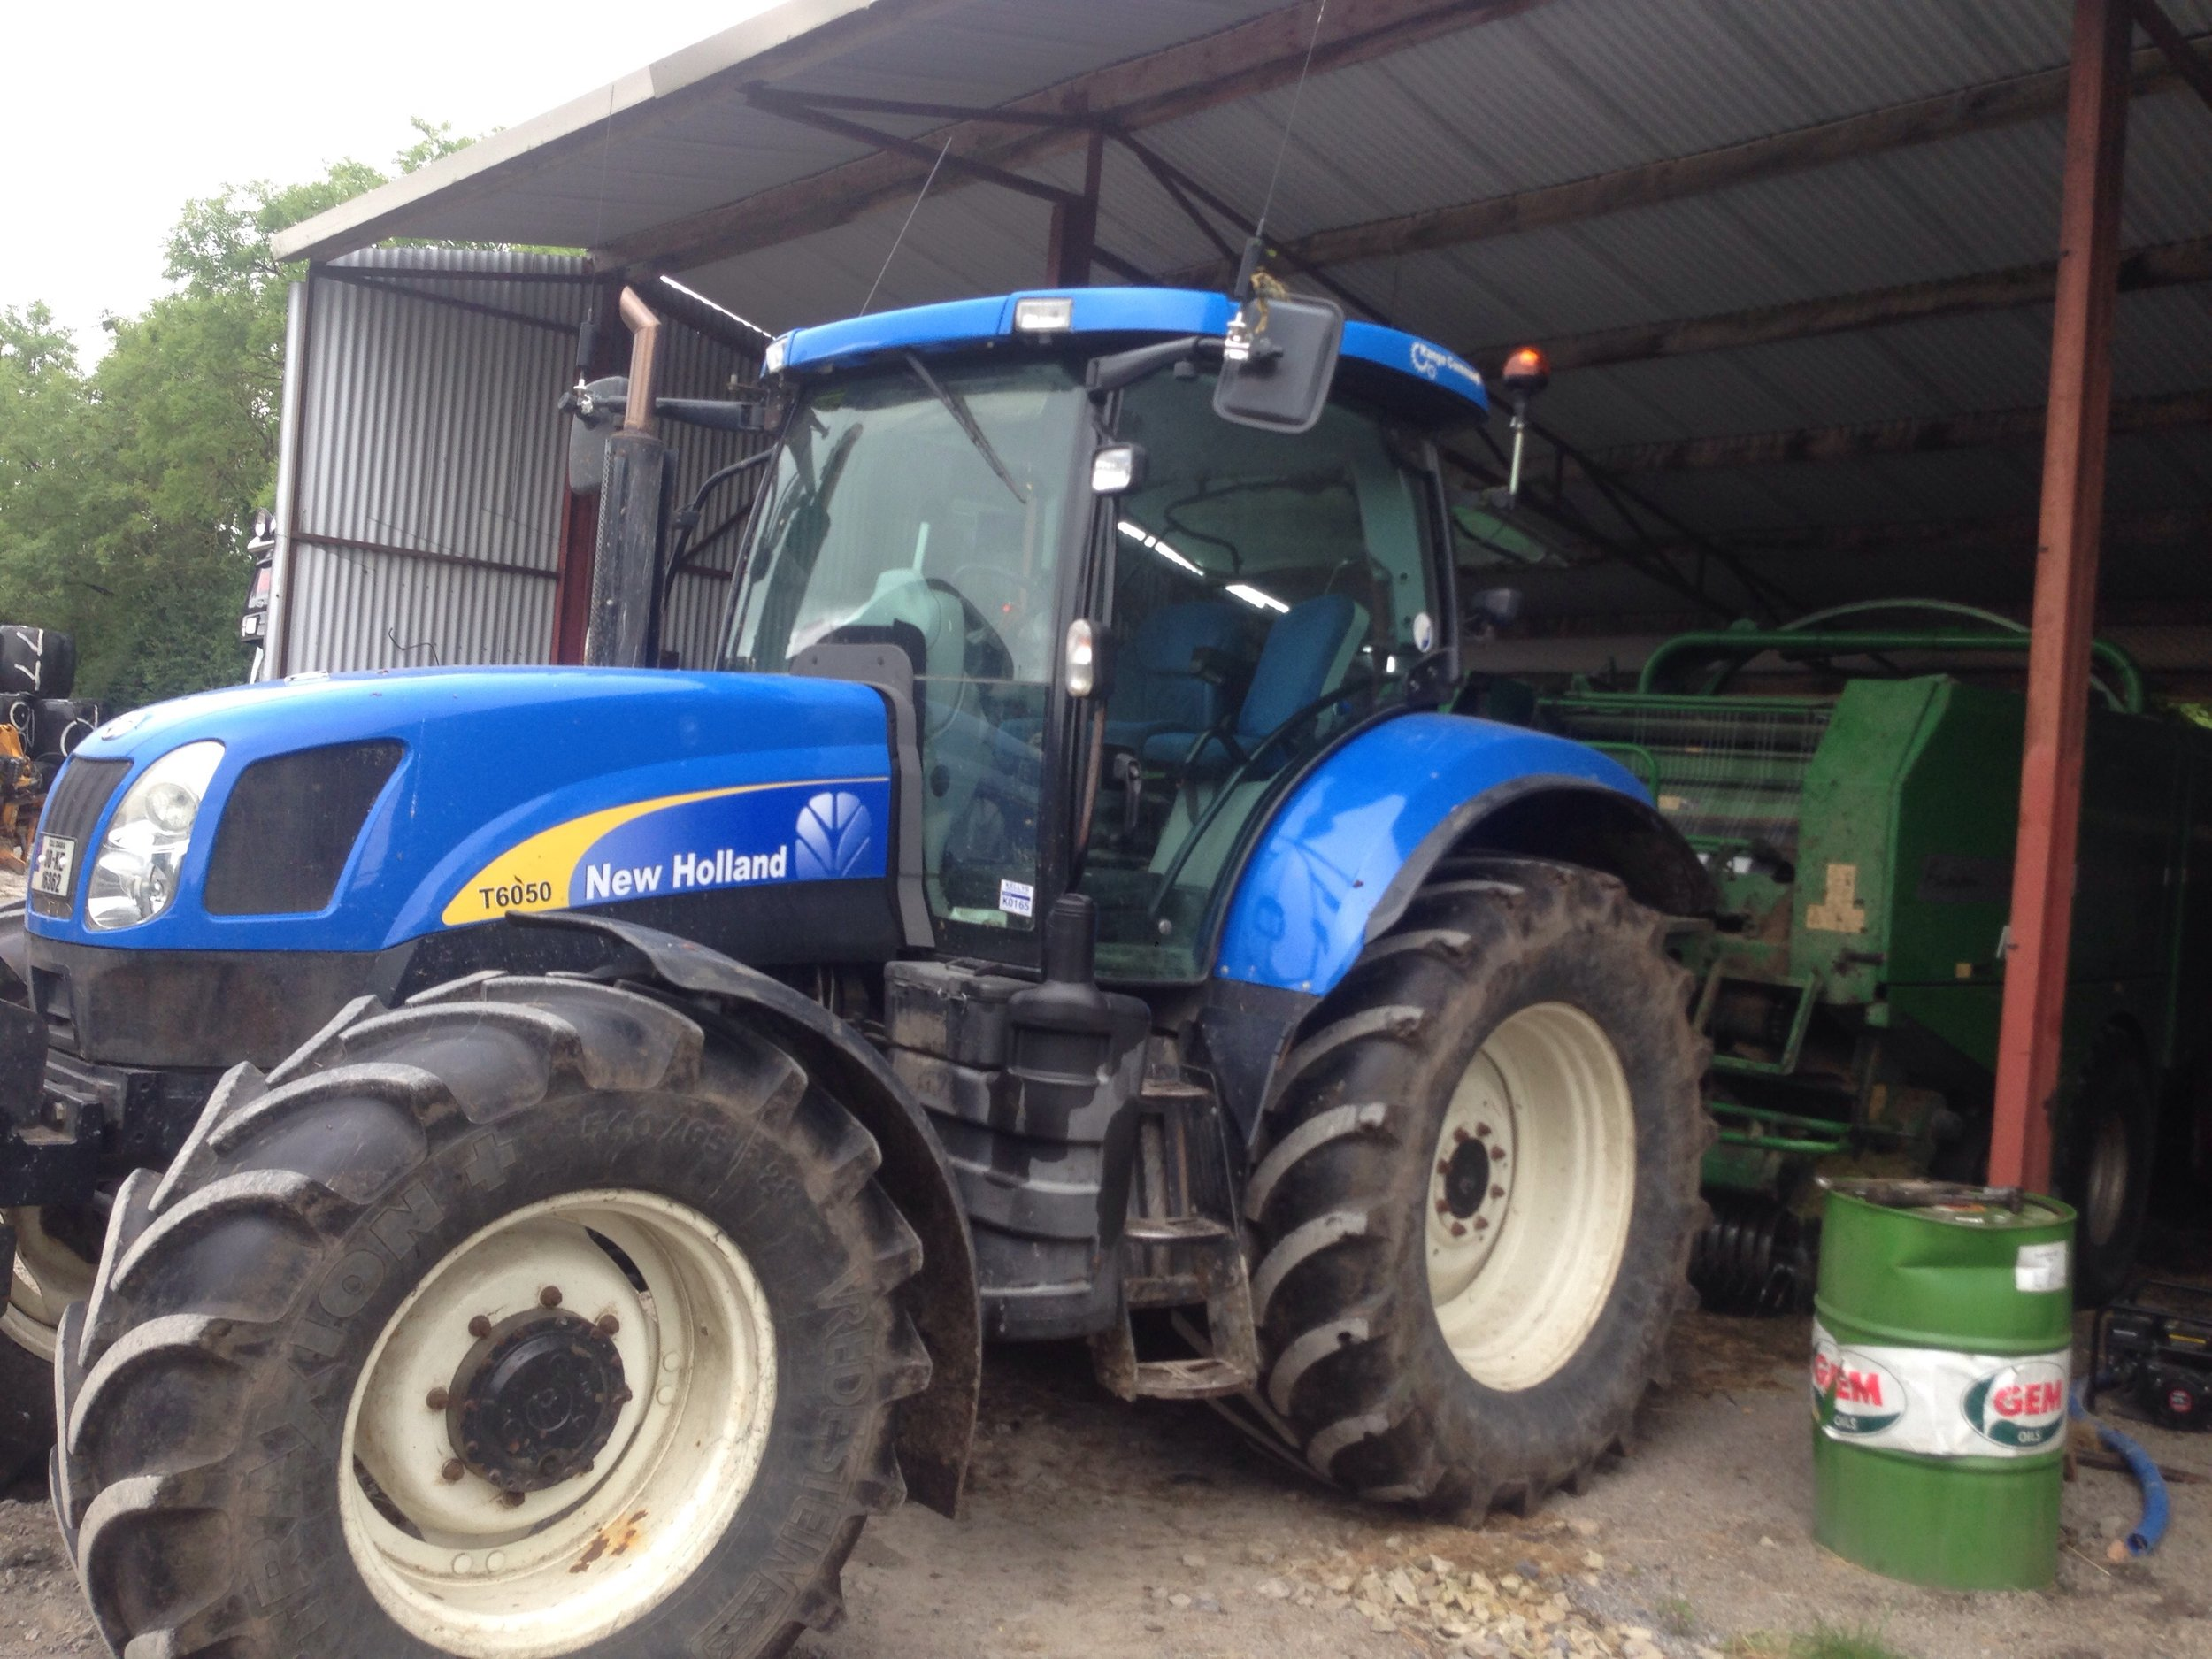 TRACTOR TUNING IRELAND ECU REMAP NEW HOLLAND.JPG